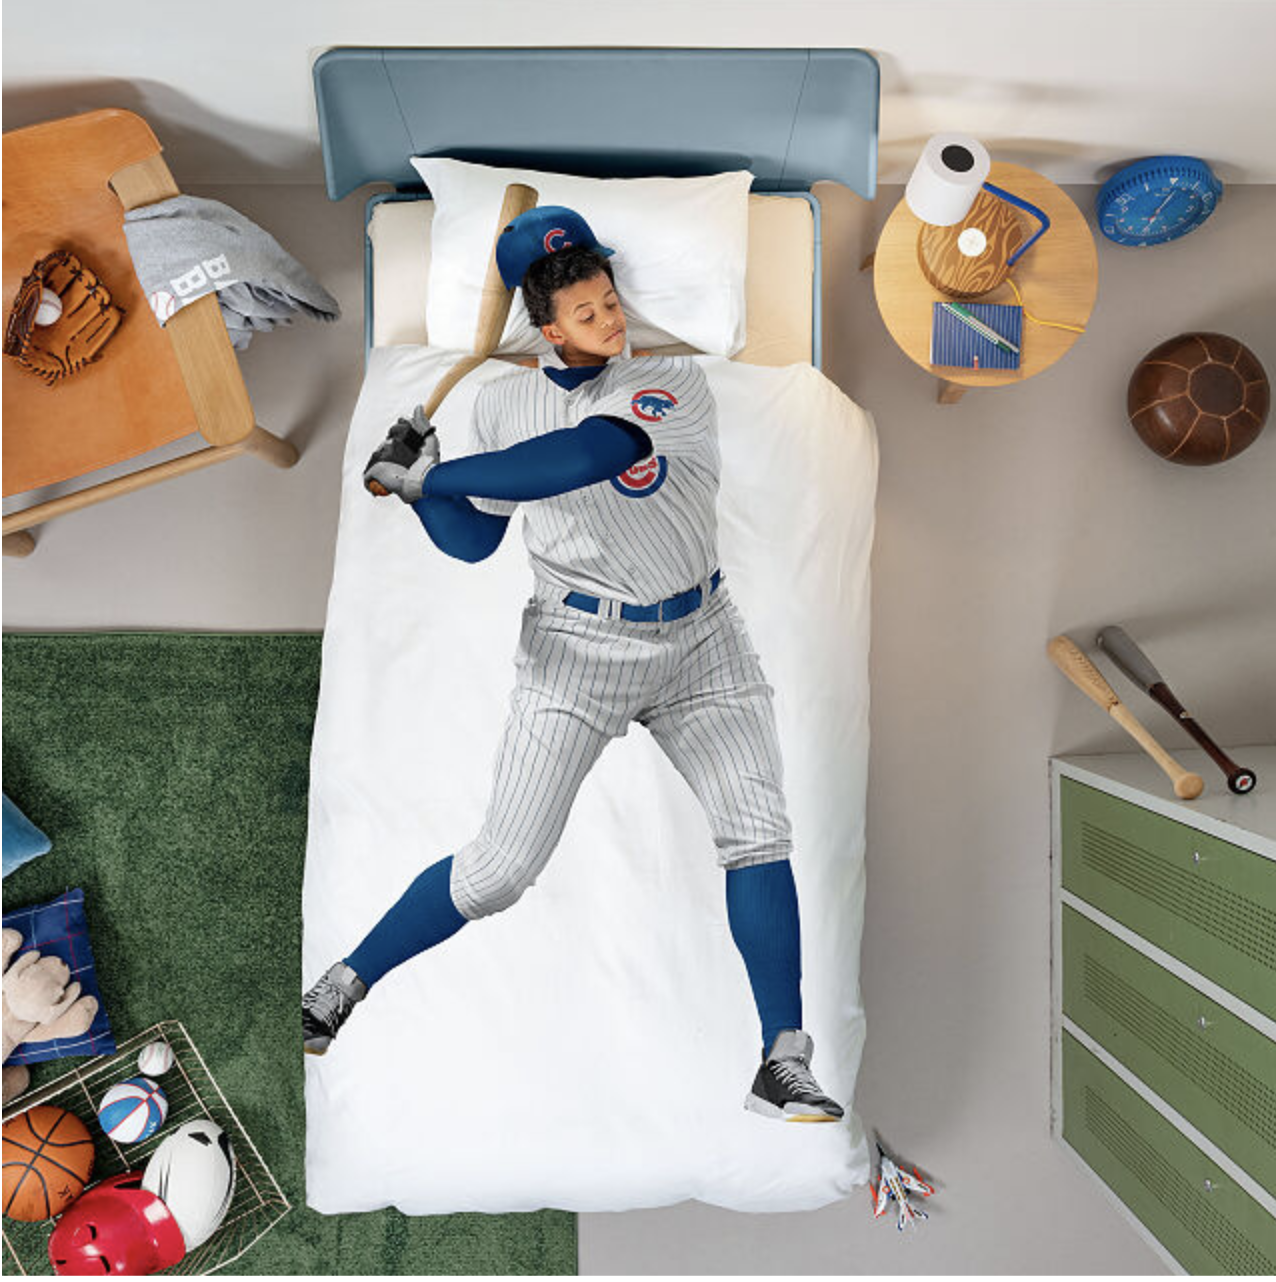 A bedspread with the body of a baseball player on it